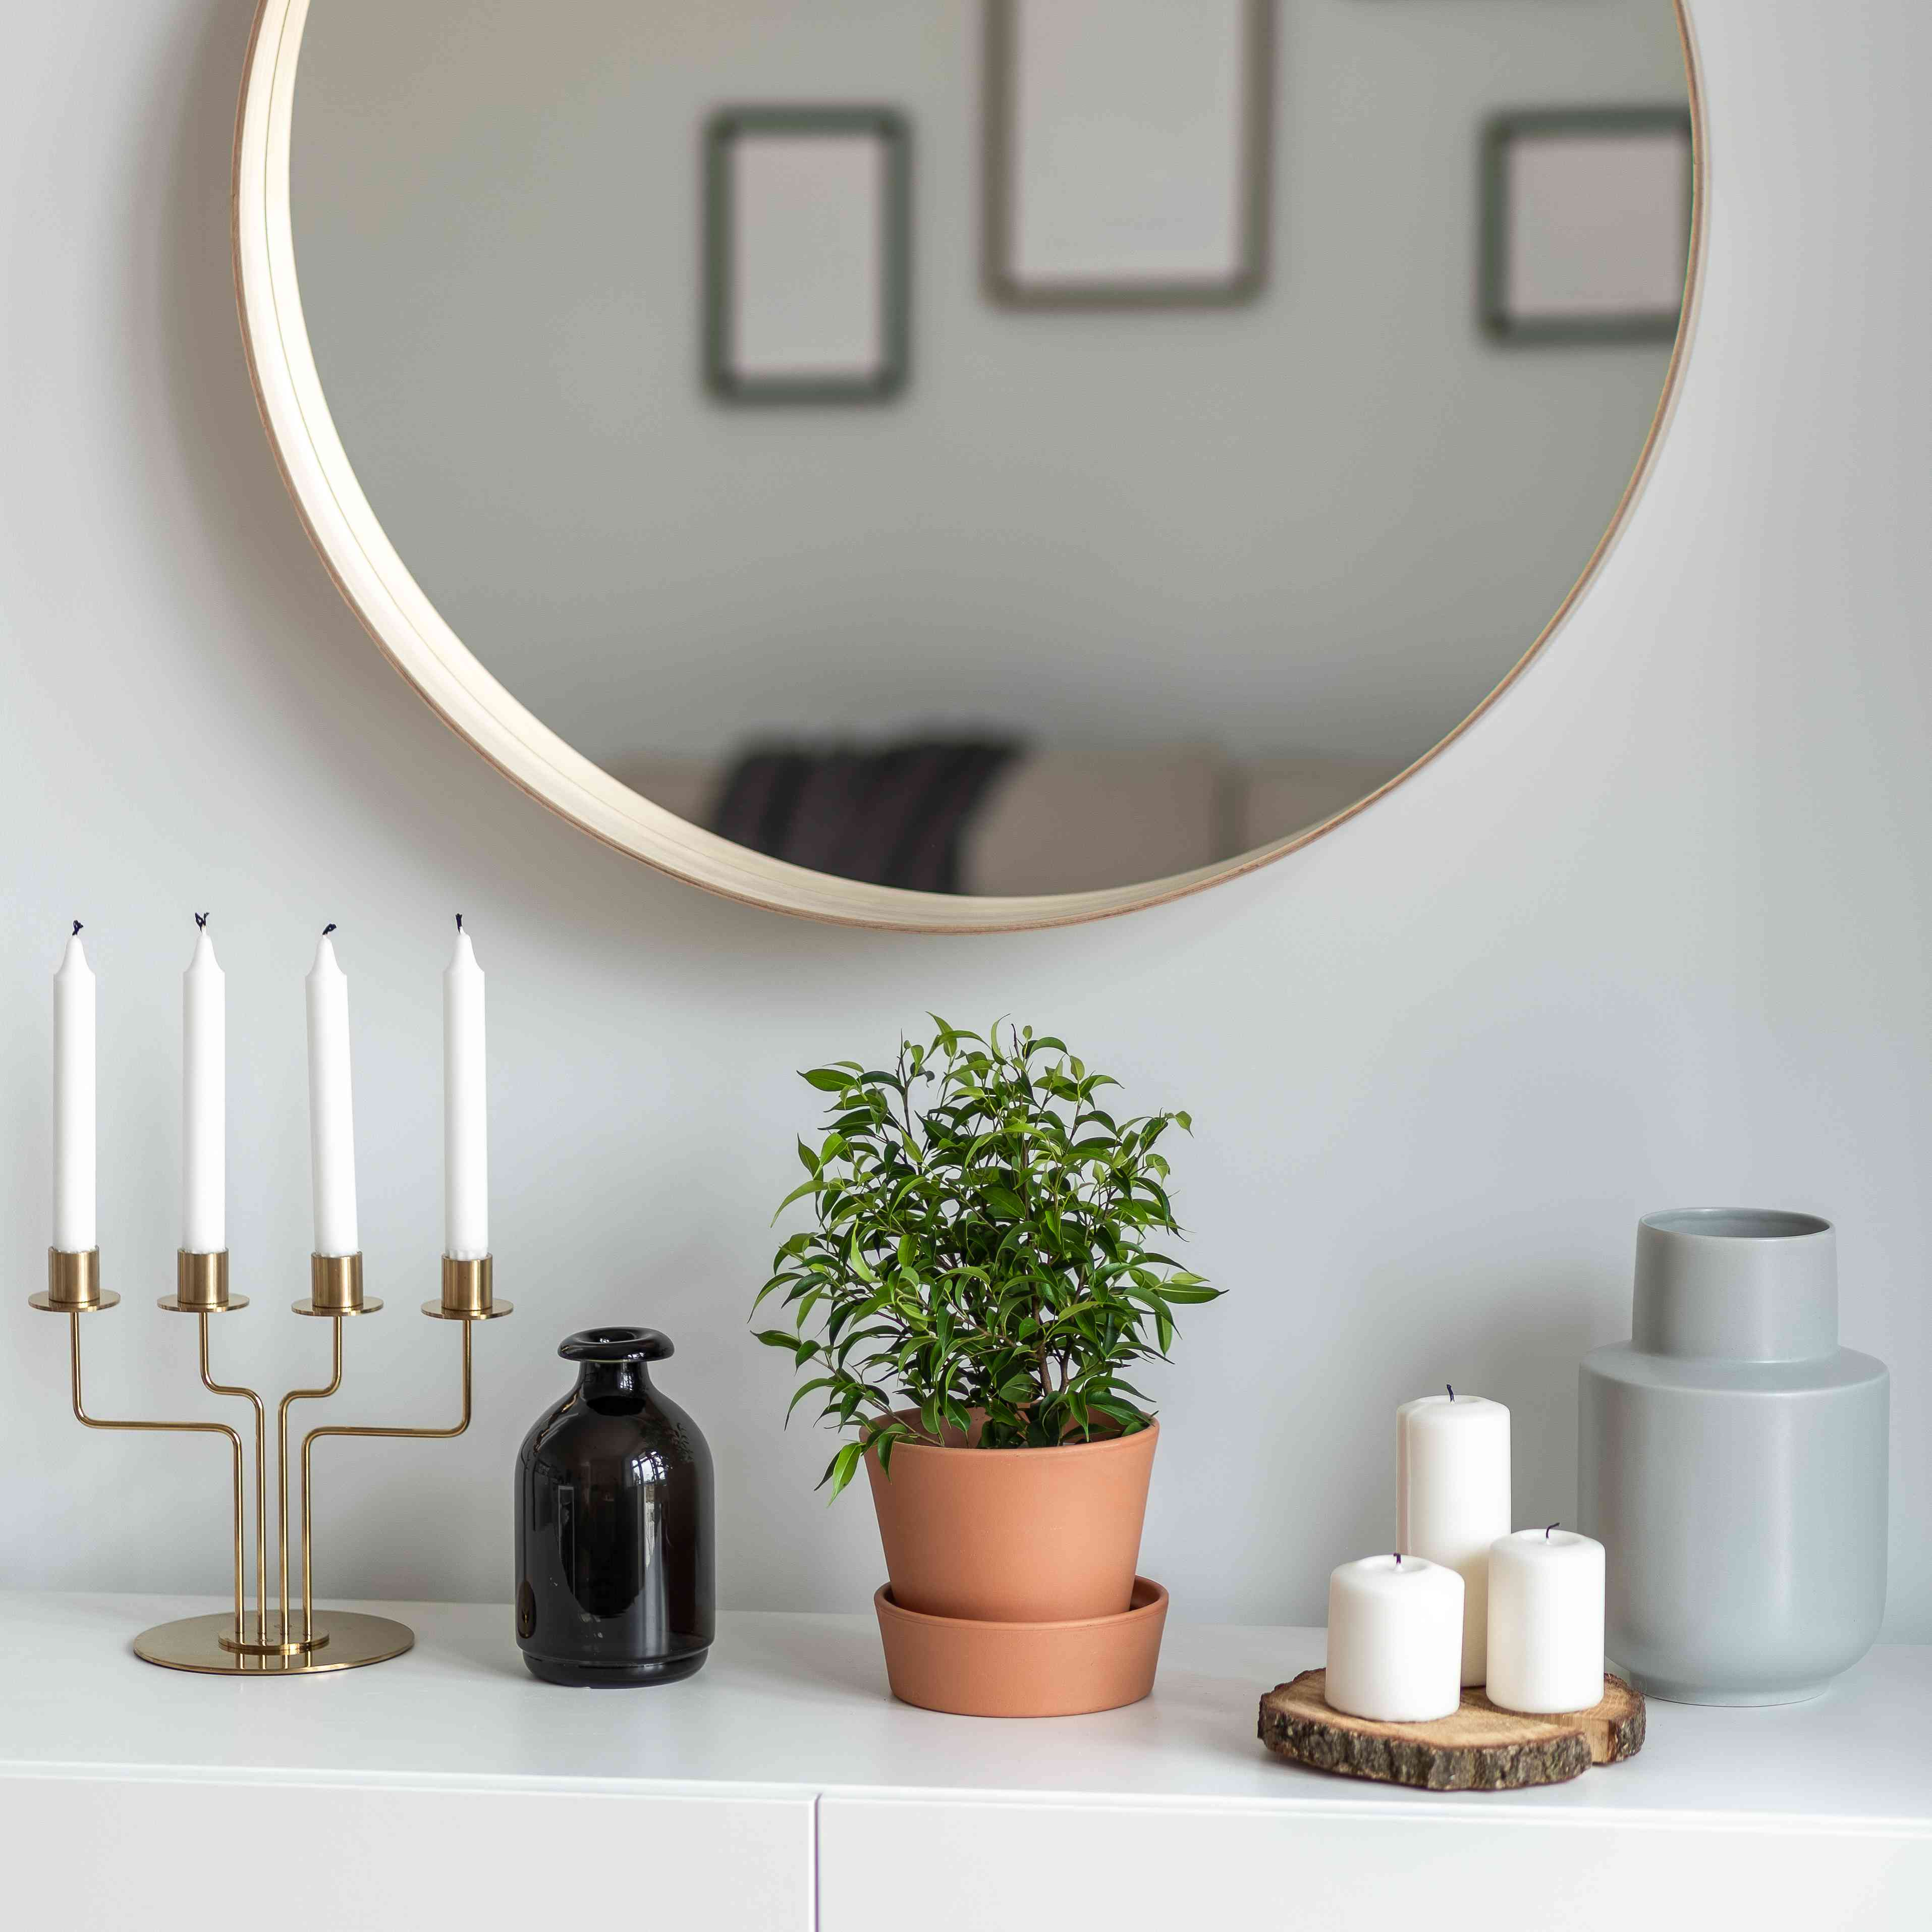 Decorative accessories on white sideboard